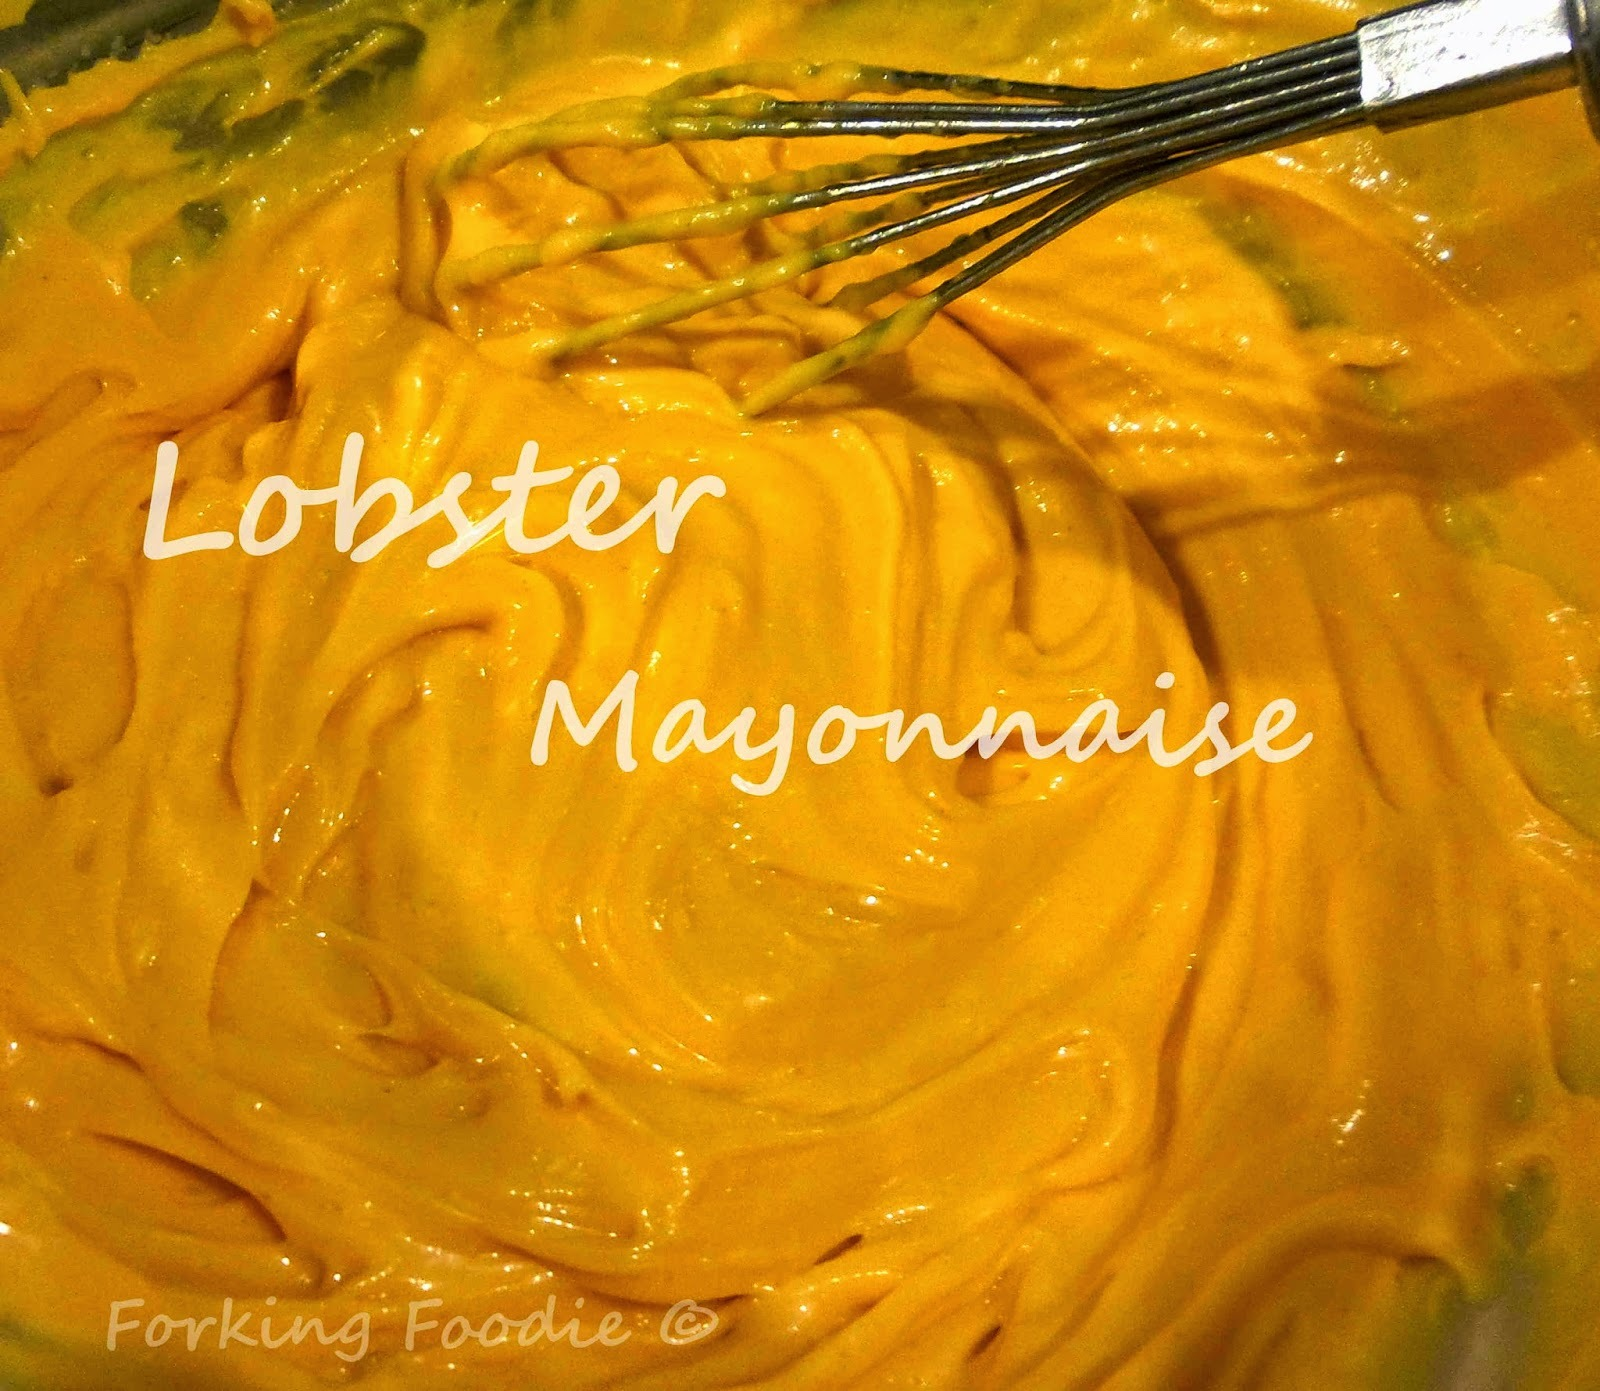 Lobster Mayonnaise (or Langoustine Mayonnaise)